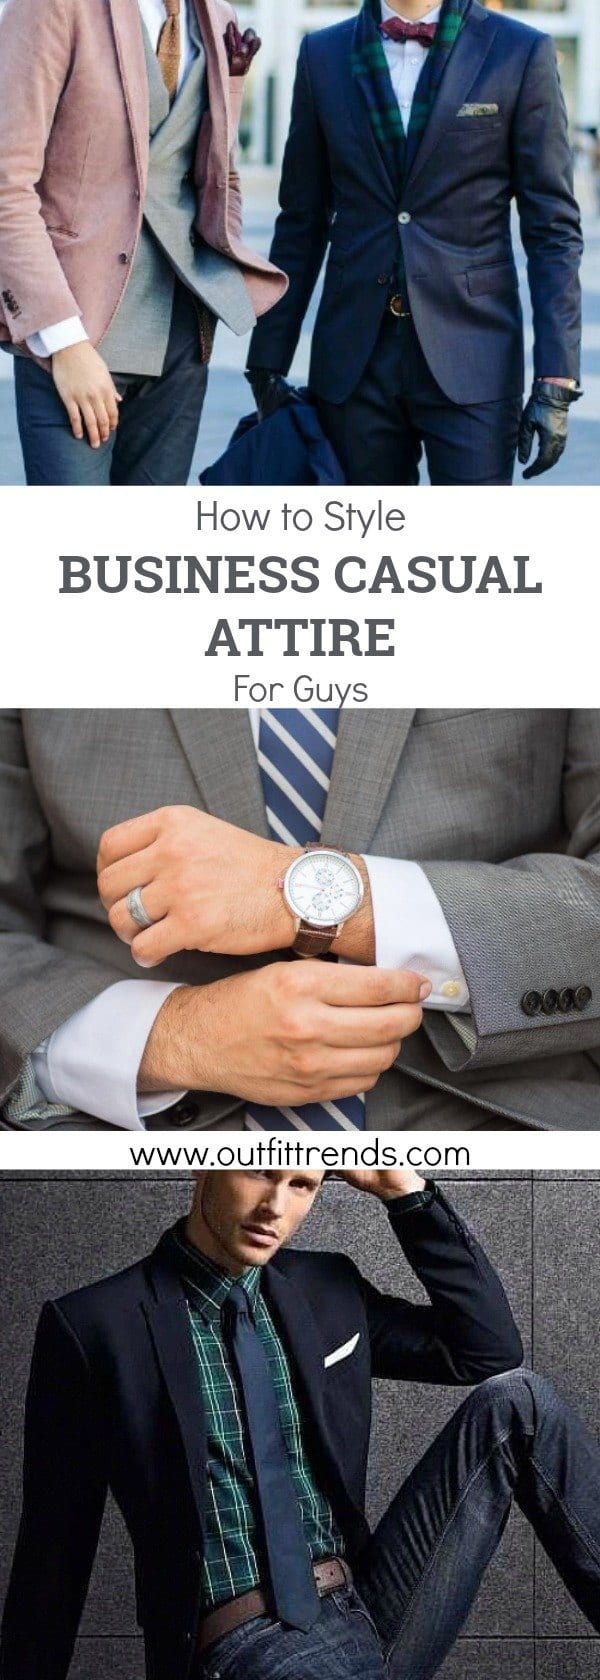 inimus-Maximus Men's Business Casual Outfits-27 Ideas to Dress Business Casual